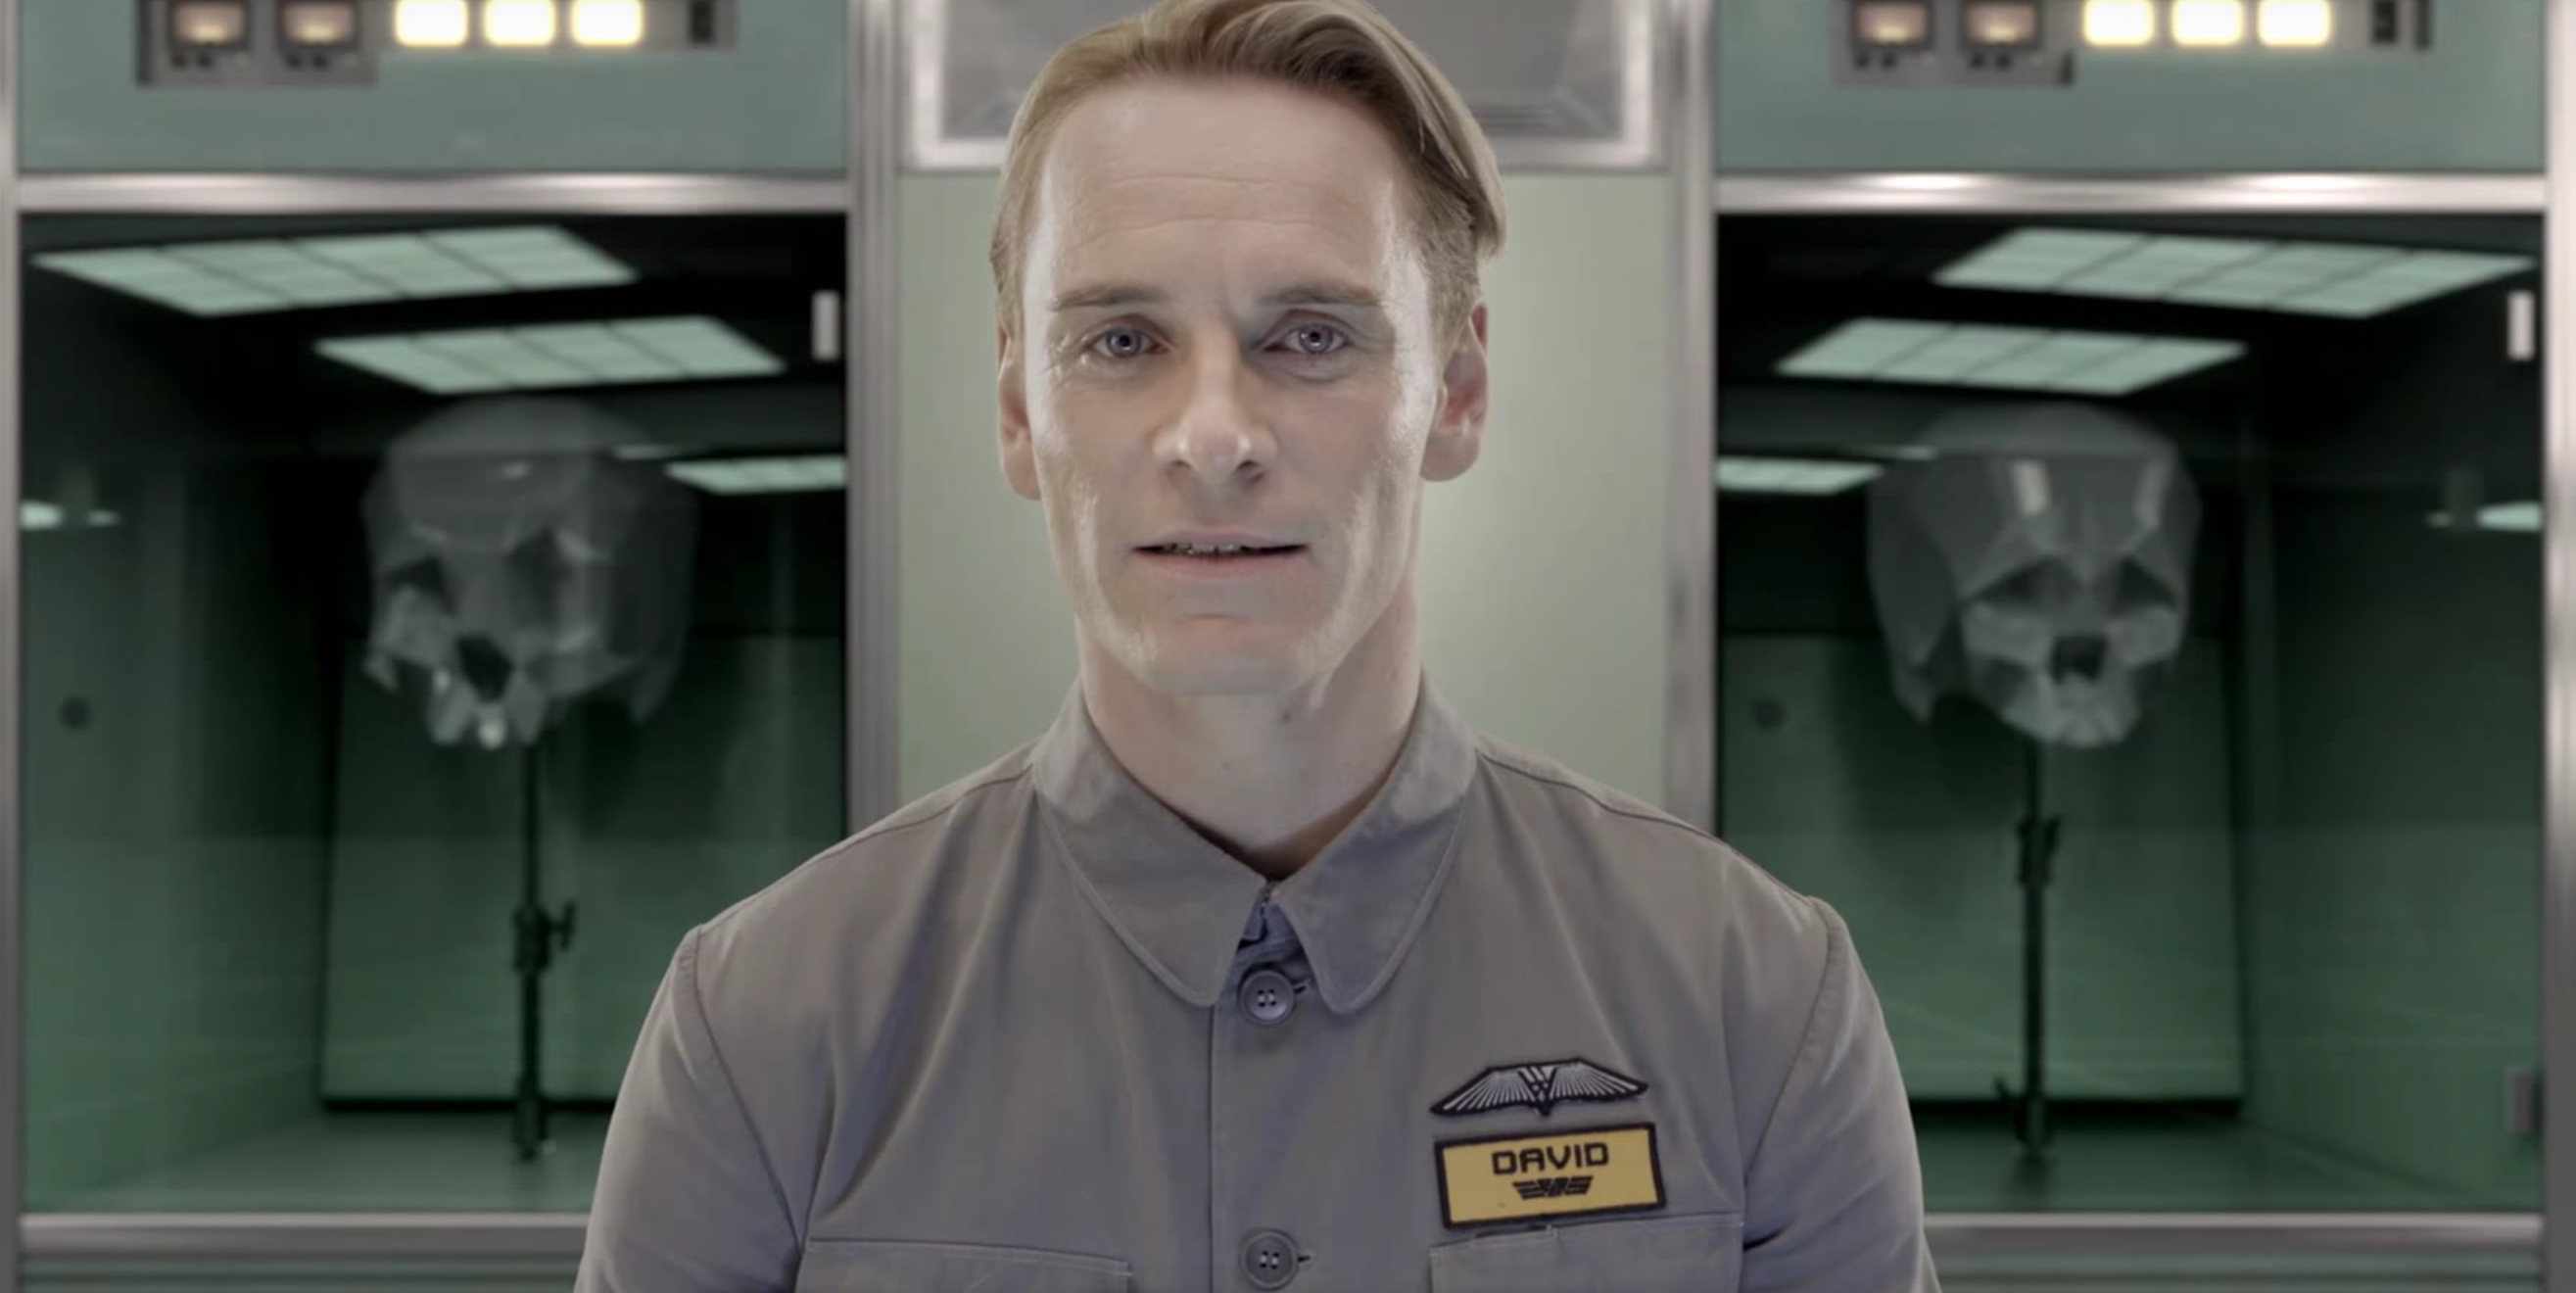 Fassbender as David 8 in 'Prometheus'.